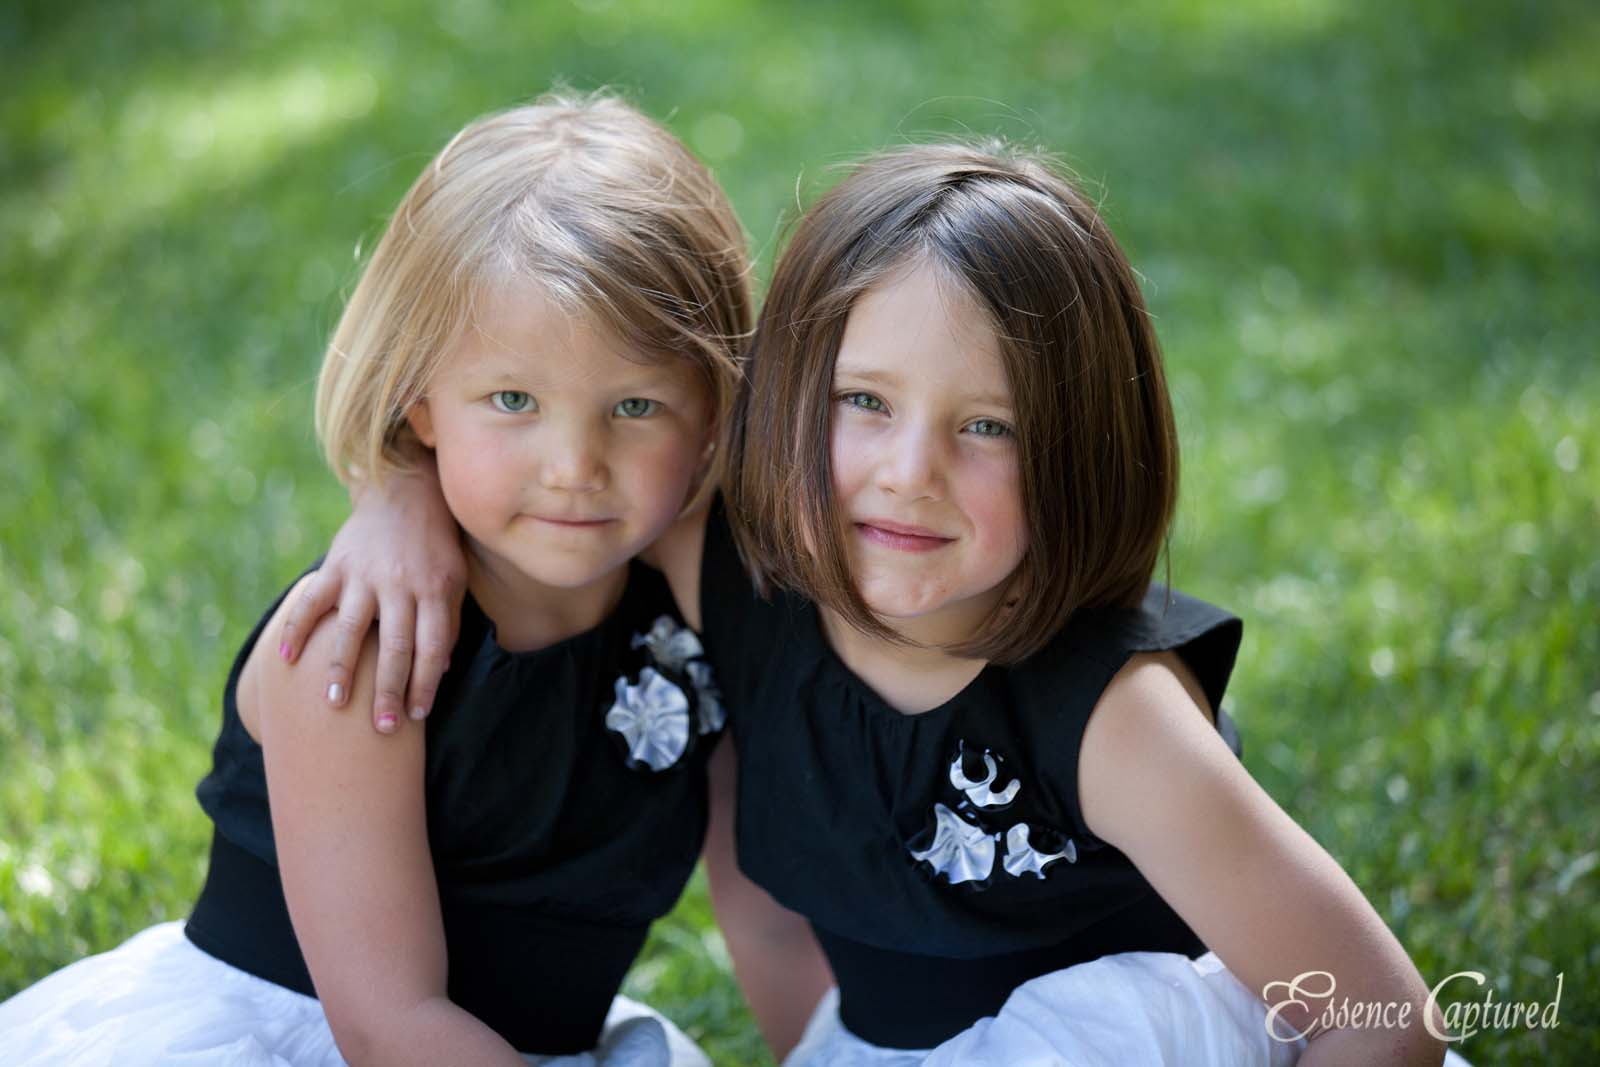 two sisters young arm in arm on grass